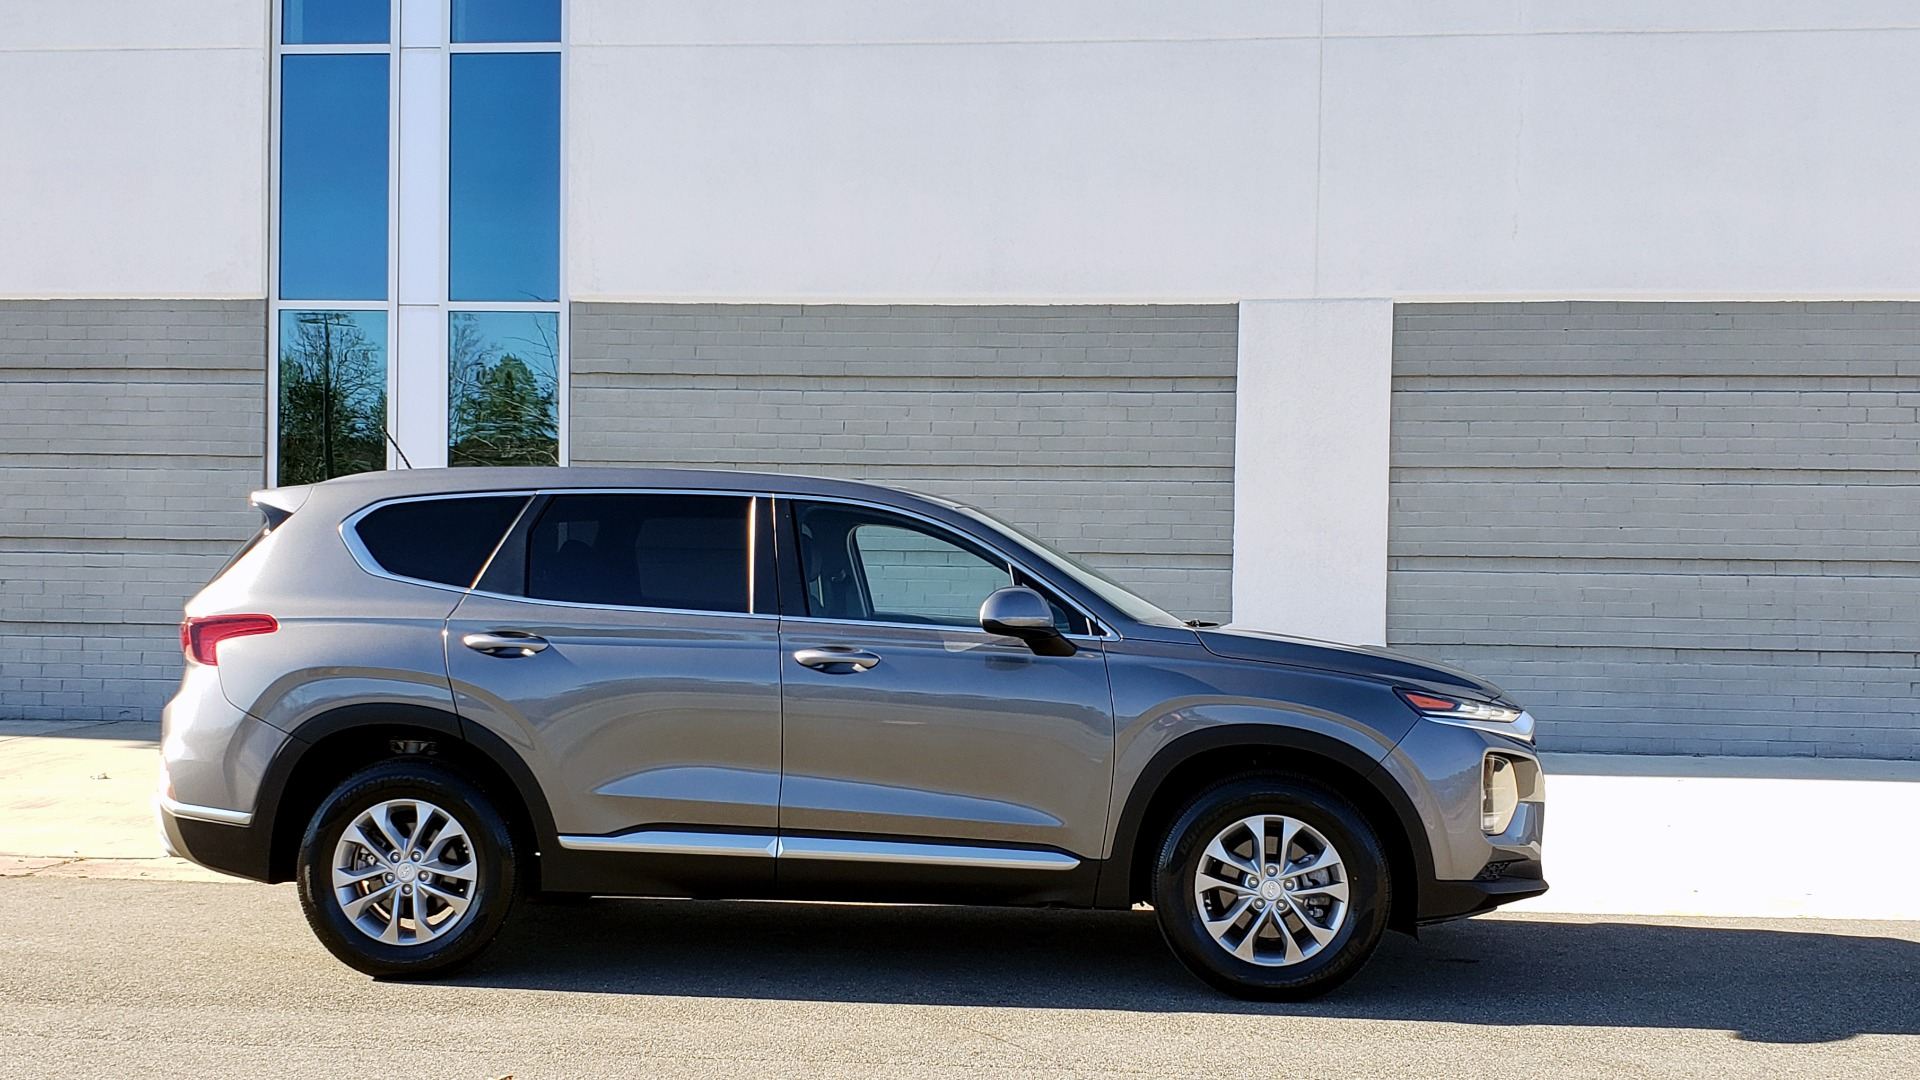 Used 2019 Hyundai SANTA FE SE / 2.4L 4-CYL / 8-SPD AUTO / BLIND SPOT / LANE KEEP ASSIST for sale Sold at Formula Imports in Charlotte NC 28227 8